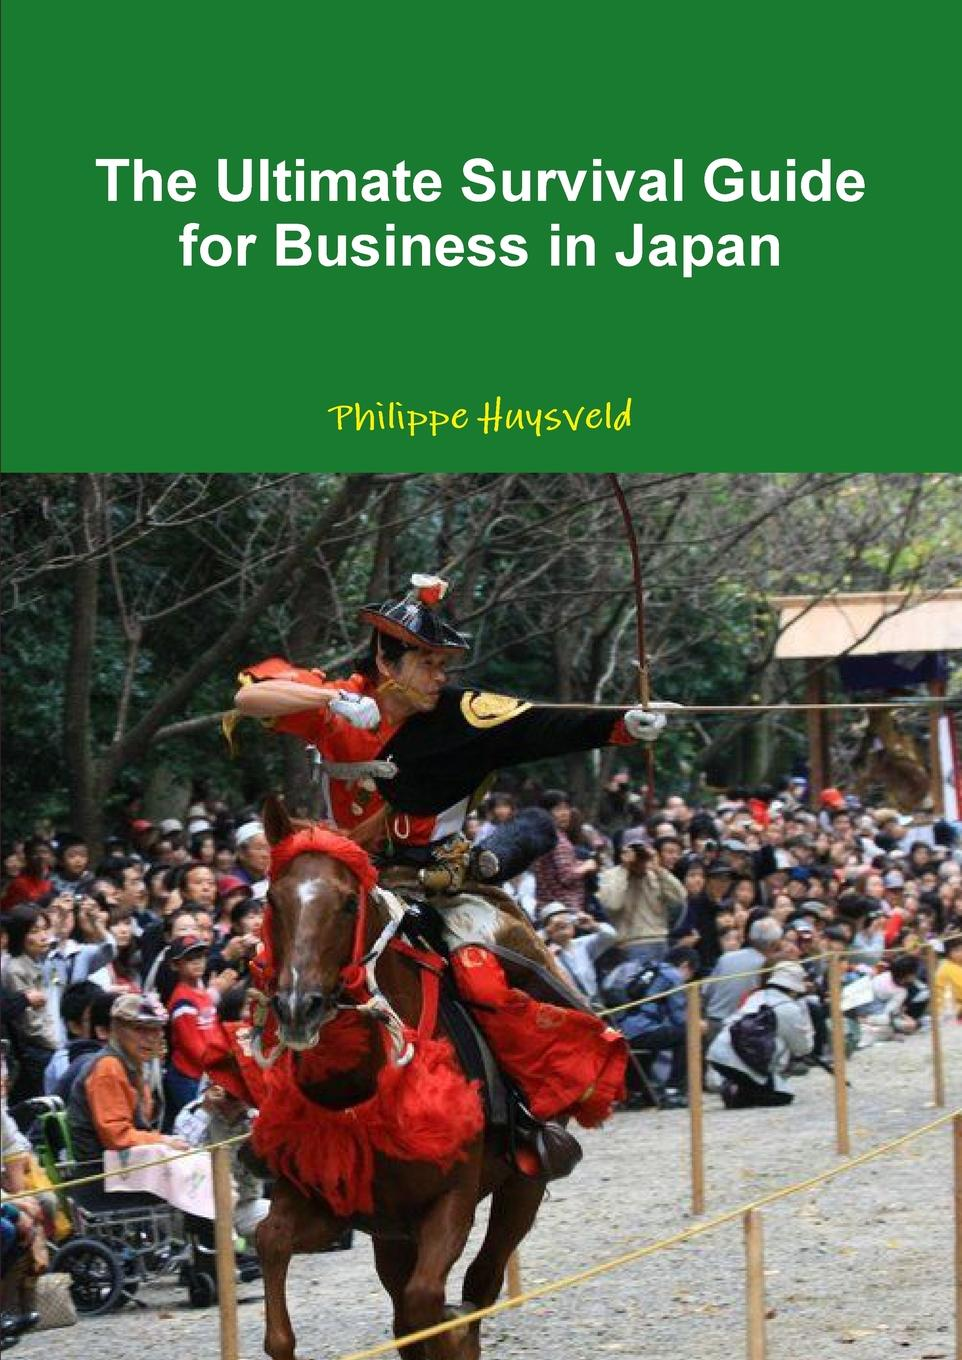 Philippe Huysveld The Ultimate Survival Guide for Business in Japan (couverture souple) thomas meyer a innovate how great companies get started in terrible times